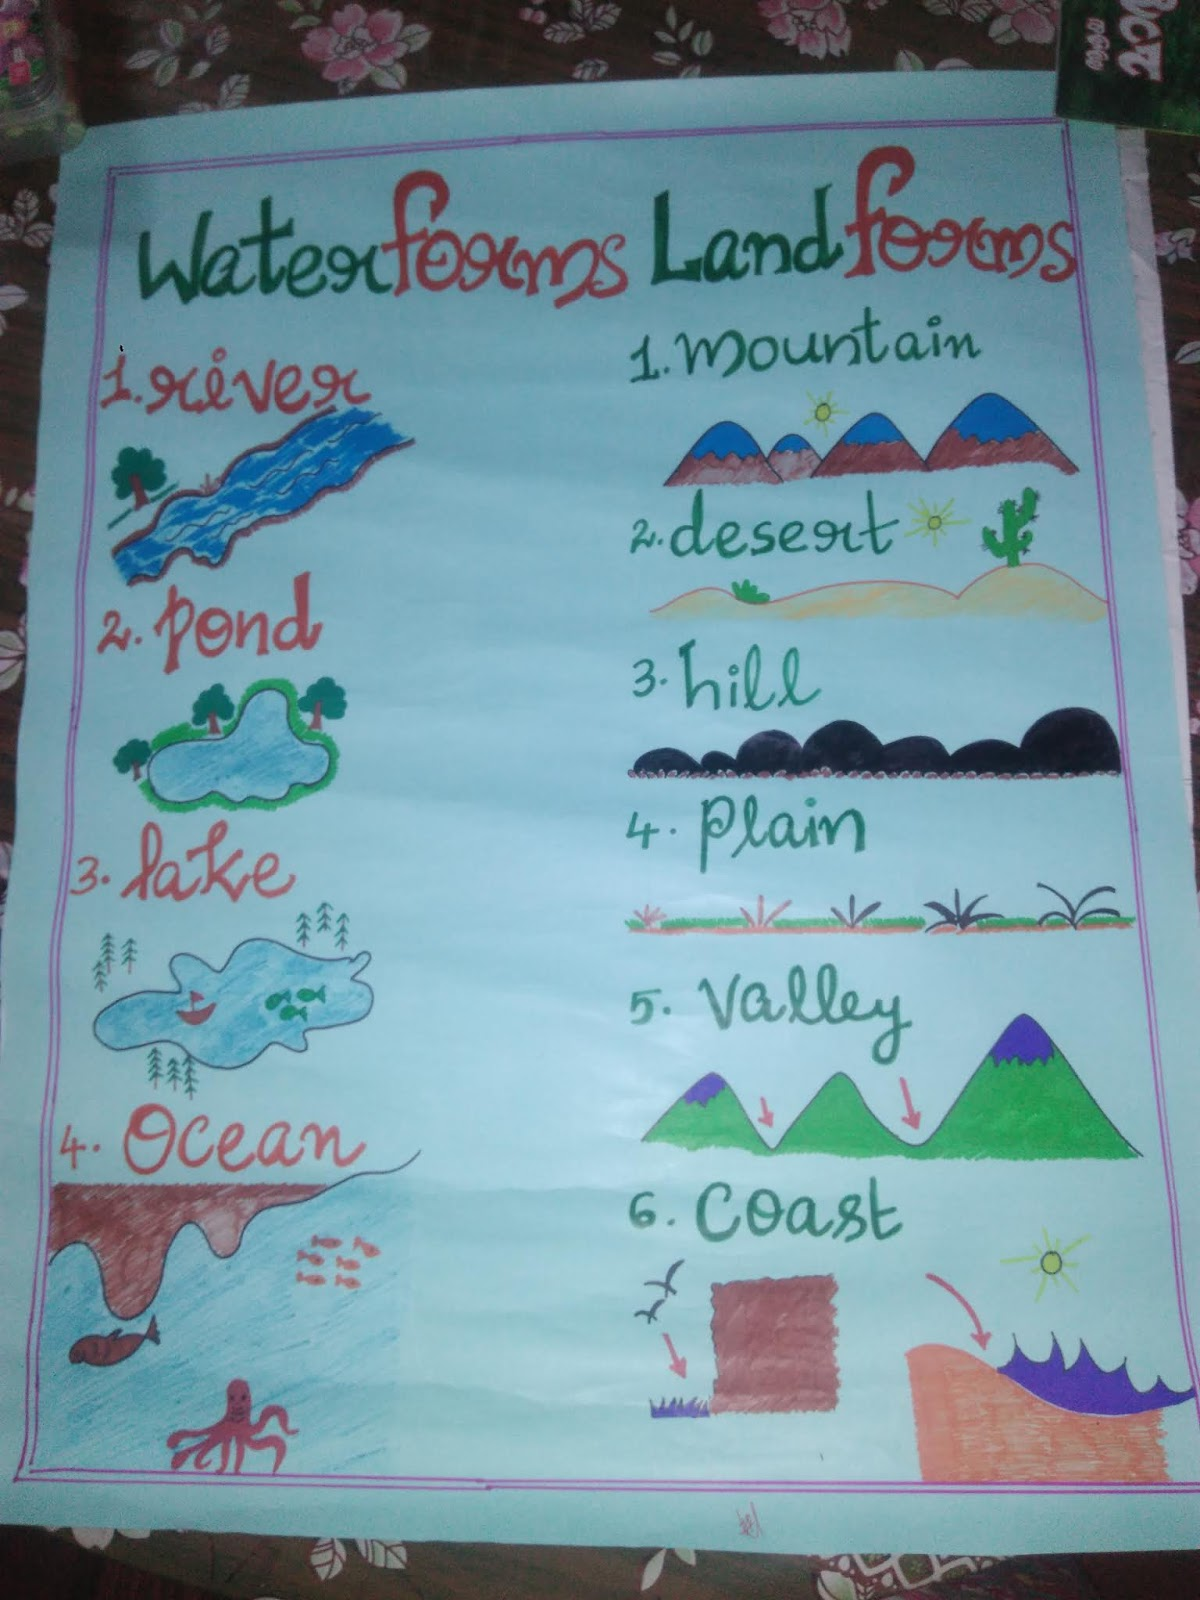 Another creative work art related to water forms and land also jency jose creativity  ed social science rh jencyjoselalspot